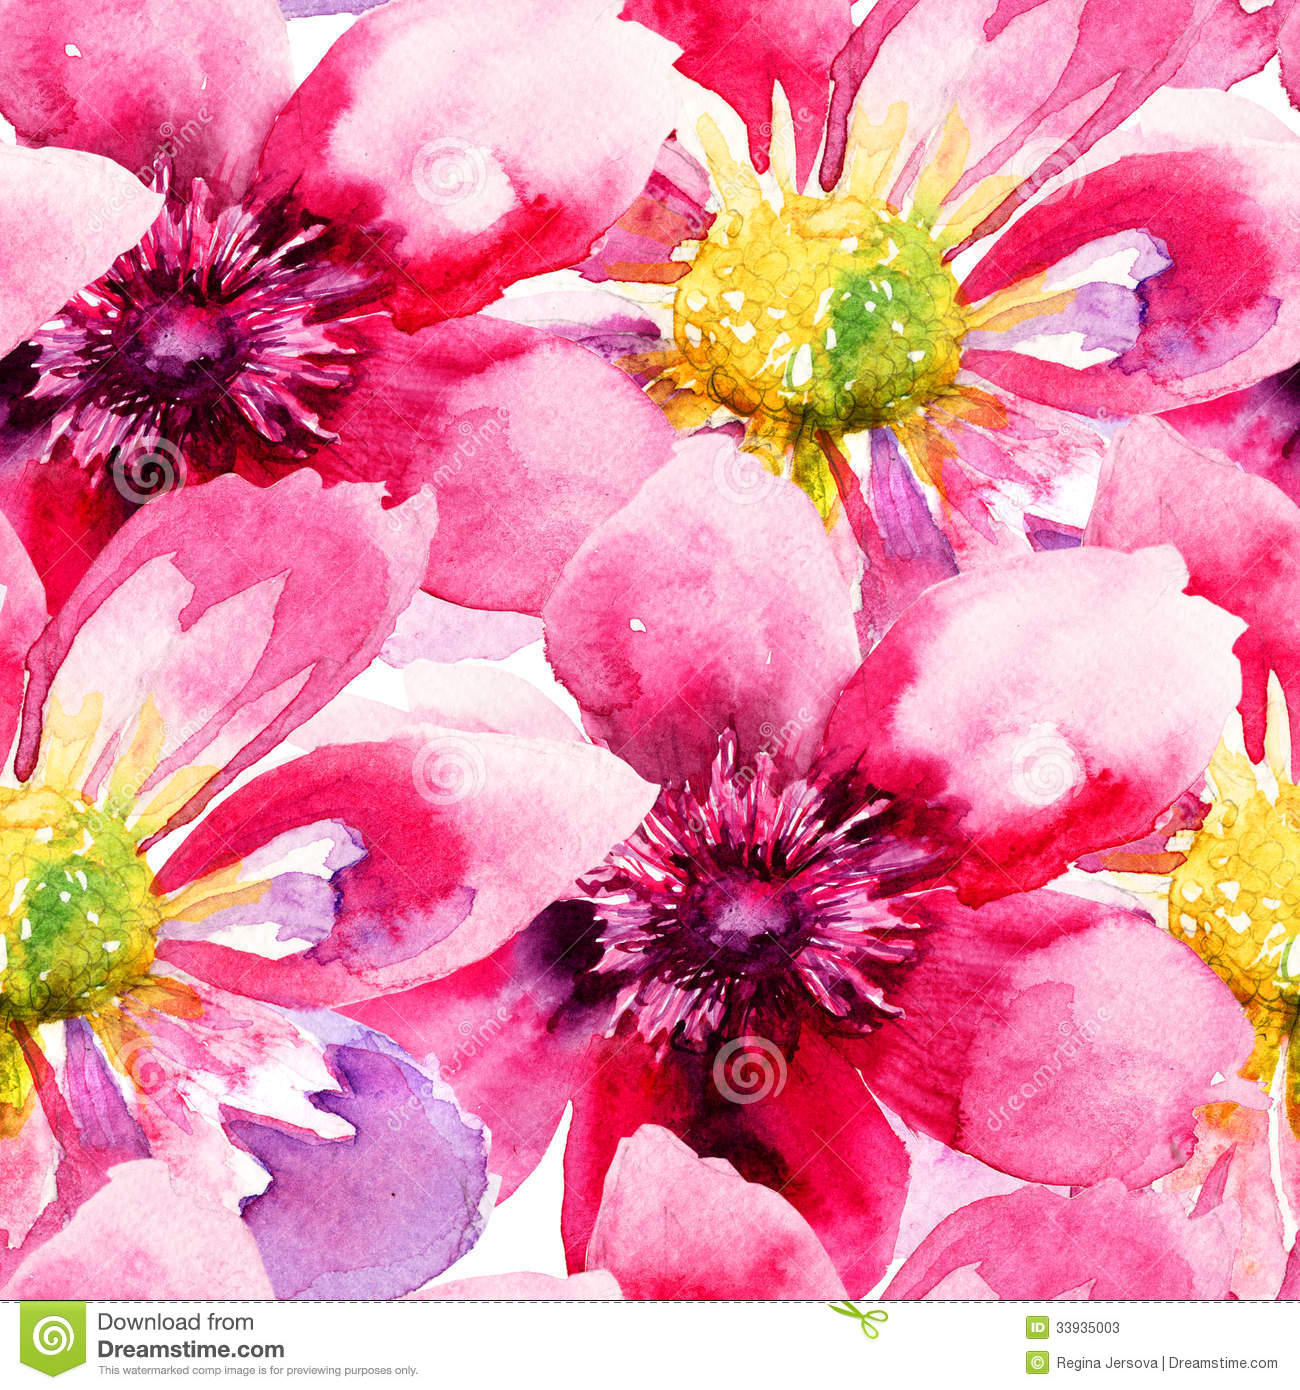 Seamless wallpaper with pink flowers stock illustration download seamless wallpaper with pink flowers stock illustration illustration of structure grunge 33935003 mightylinksfo